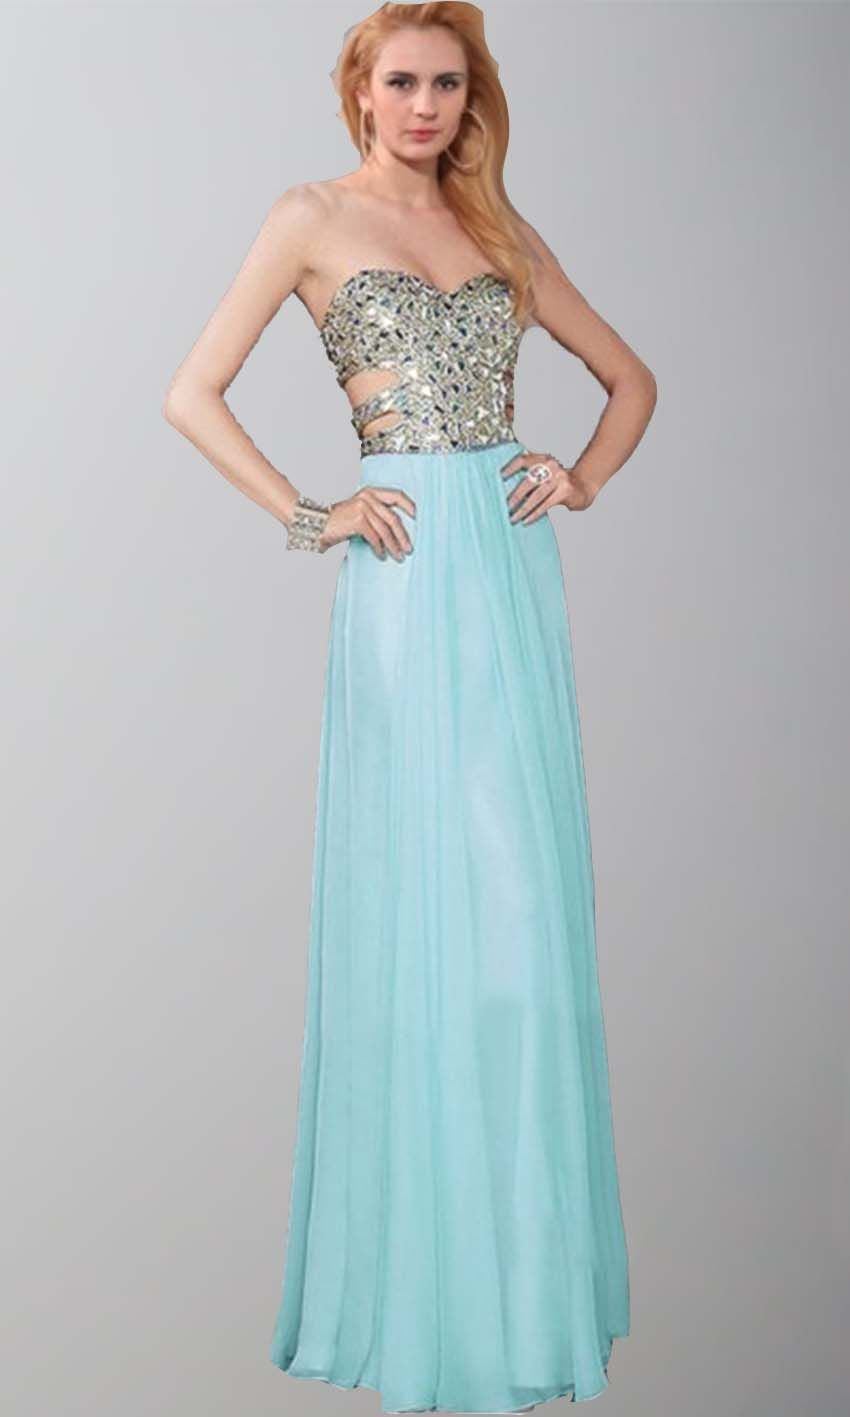 Cut Out Sweetheart Glitter Long Teal Prom Dresses UK KSP395 | uk ...